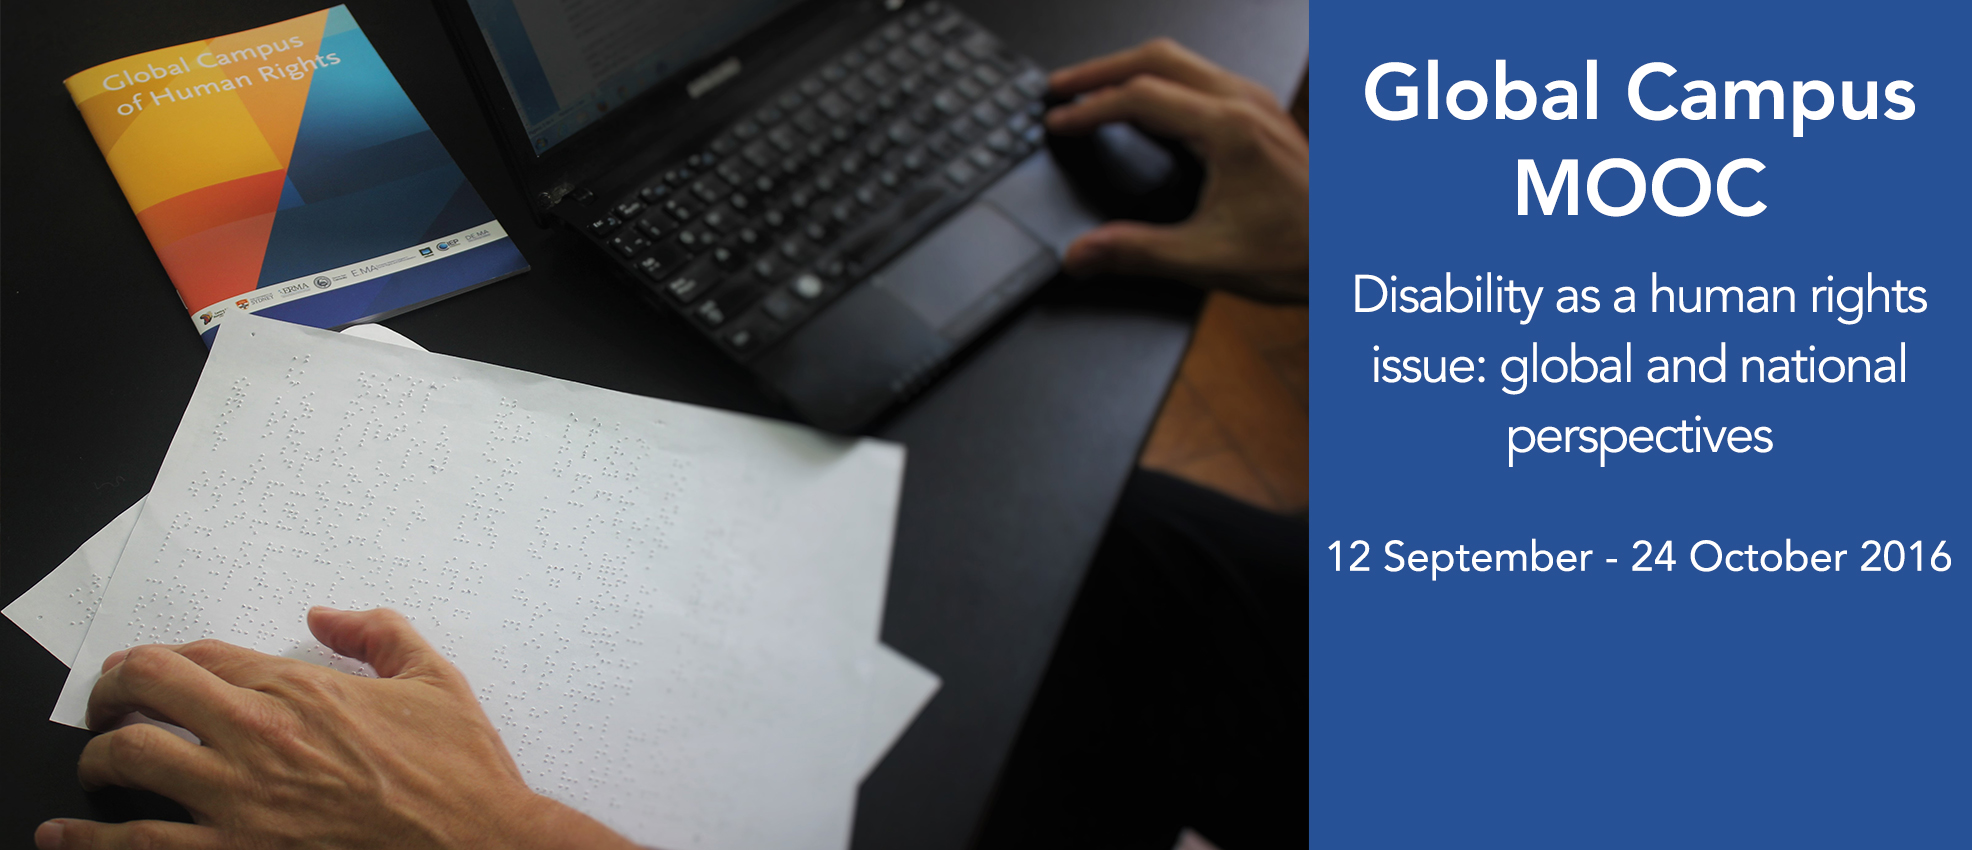 Global Campus MOOC - Disability as a human rights issue: global and national perspectives